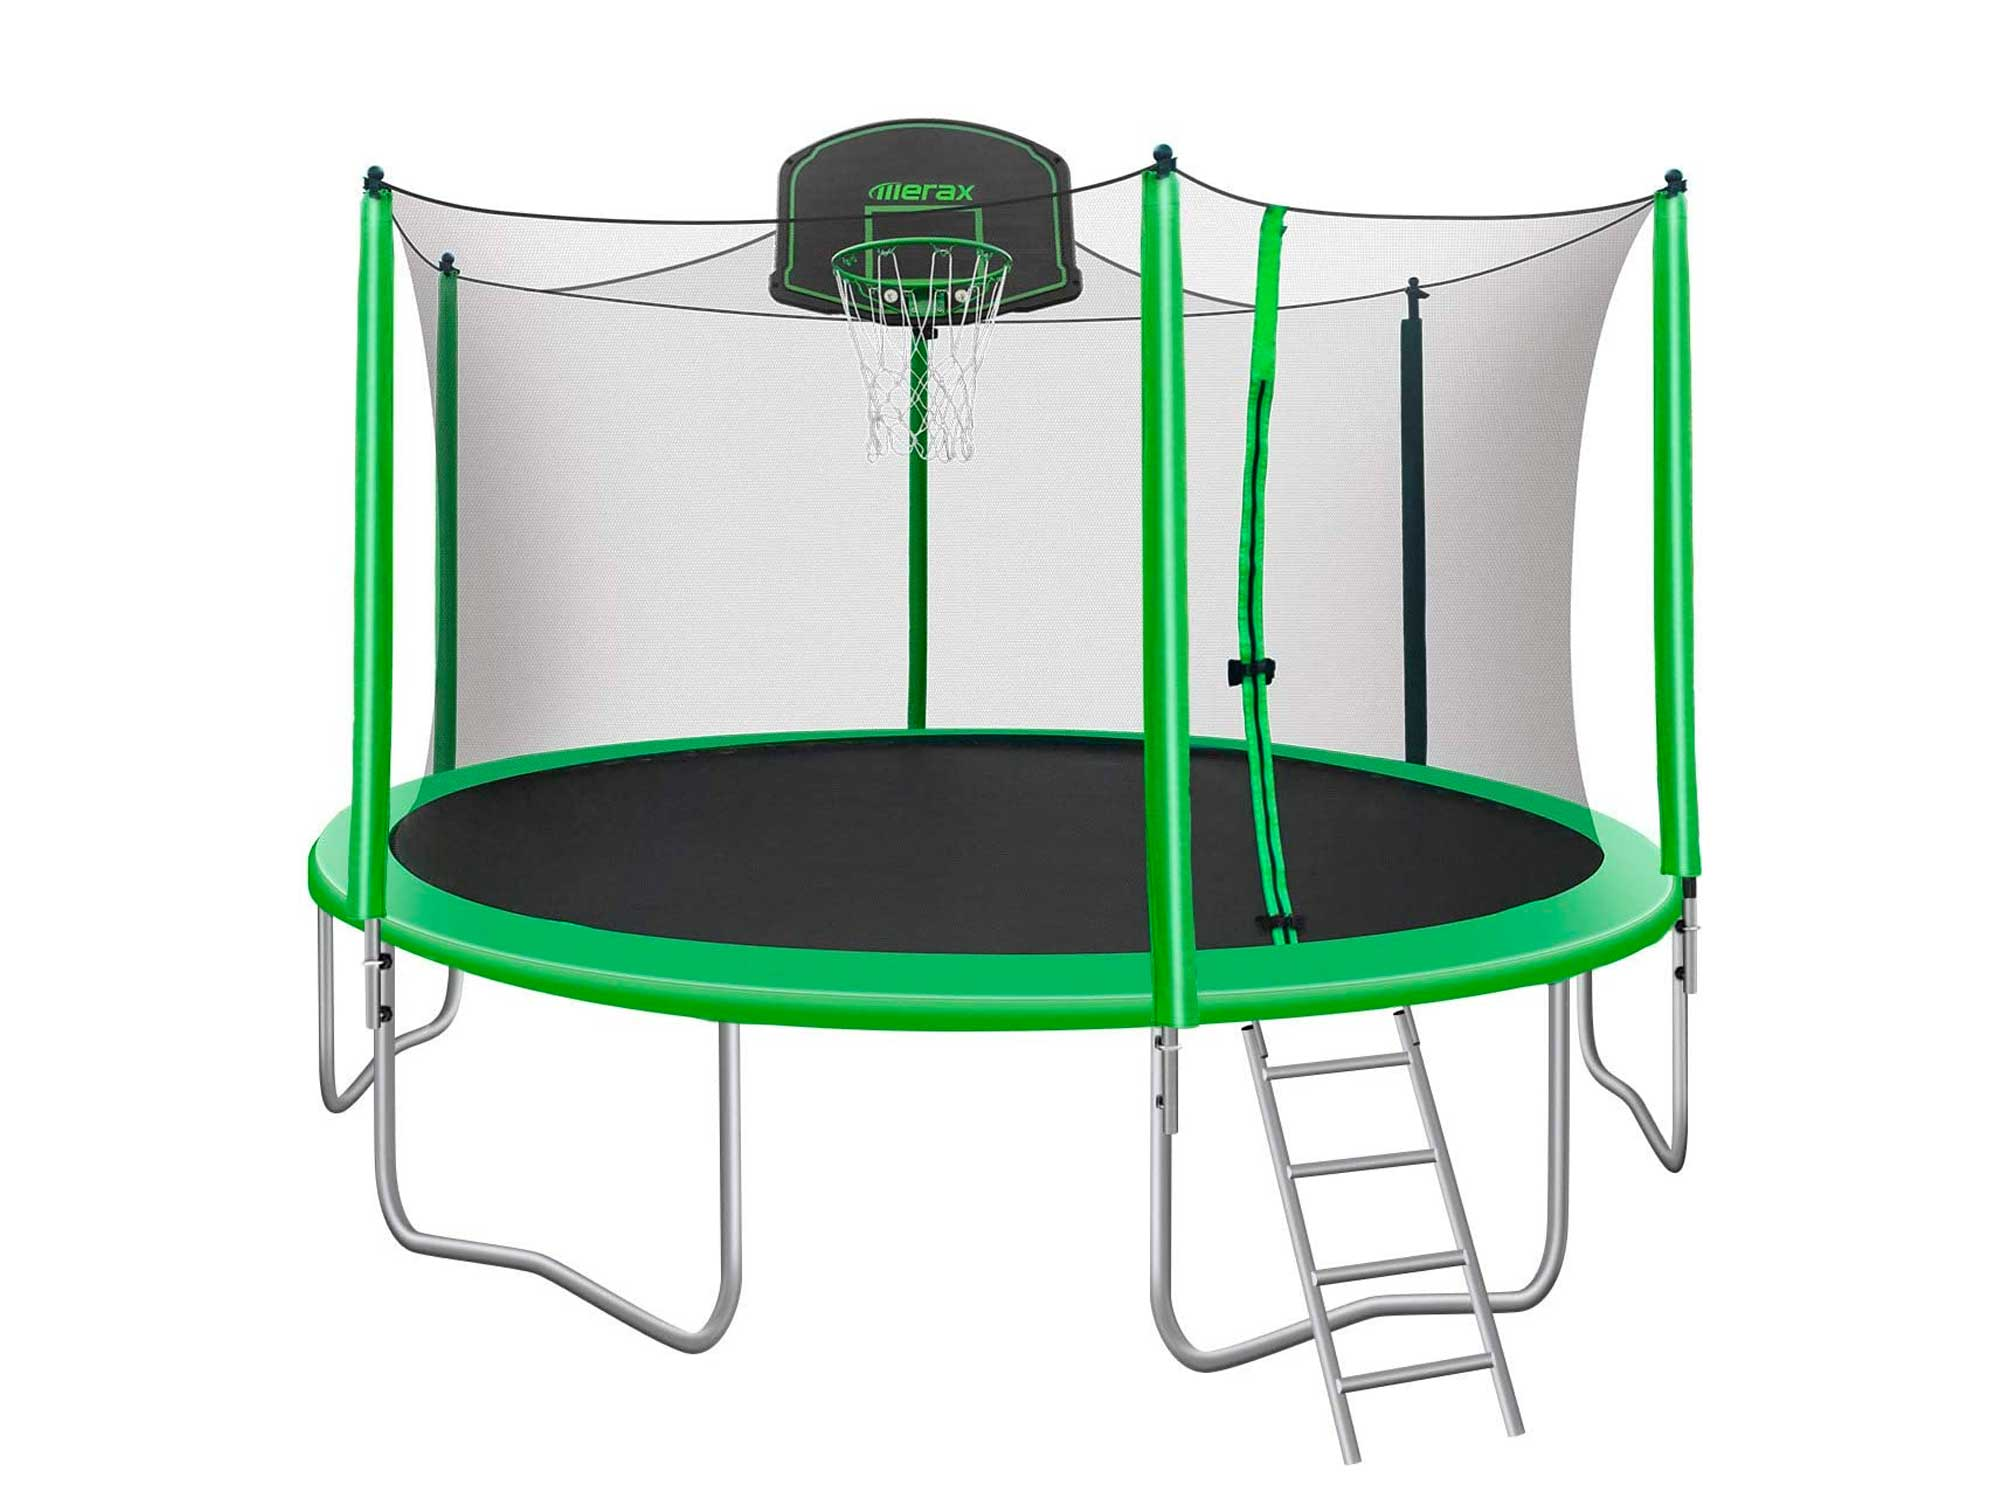 Merax 14FT 15FT Trampoline with Enclosure Kids Trampoline with Basketball Hoop, Ladder and Backboard Net